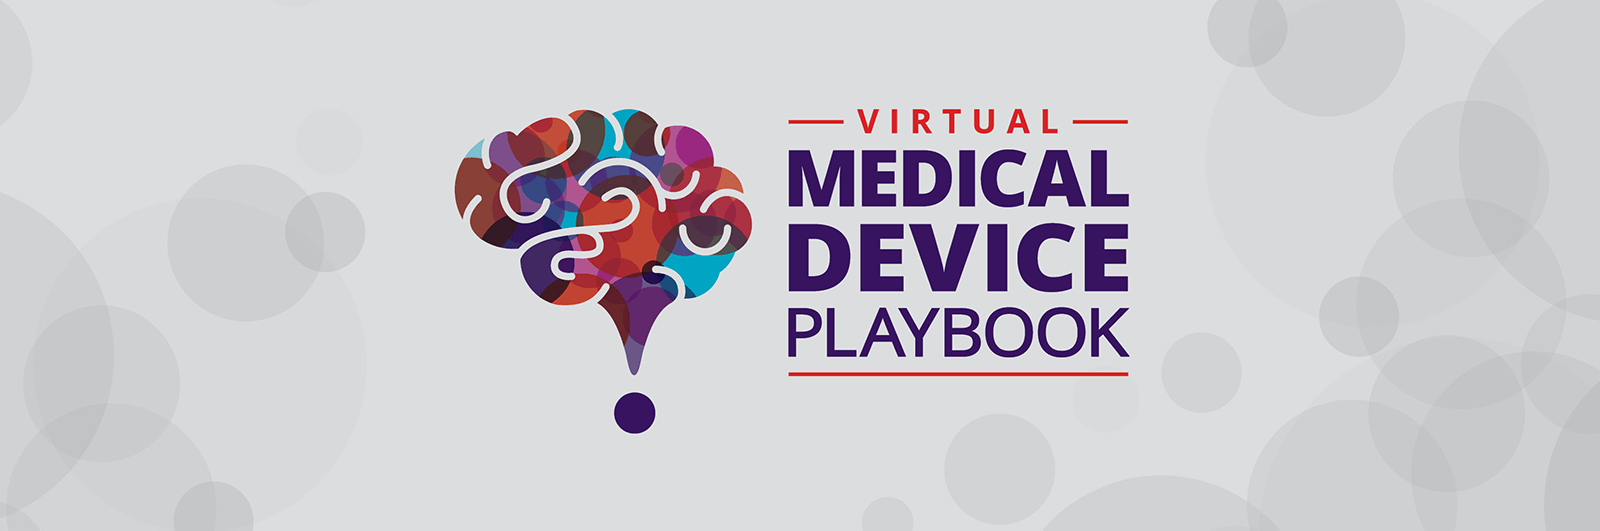 Virtual Medical Device Playbook